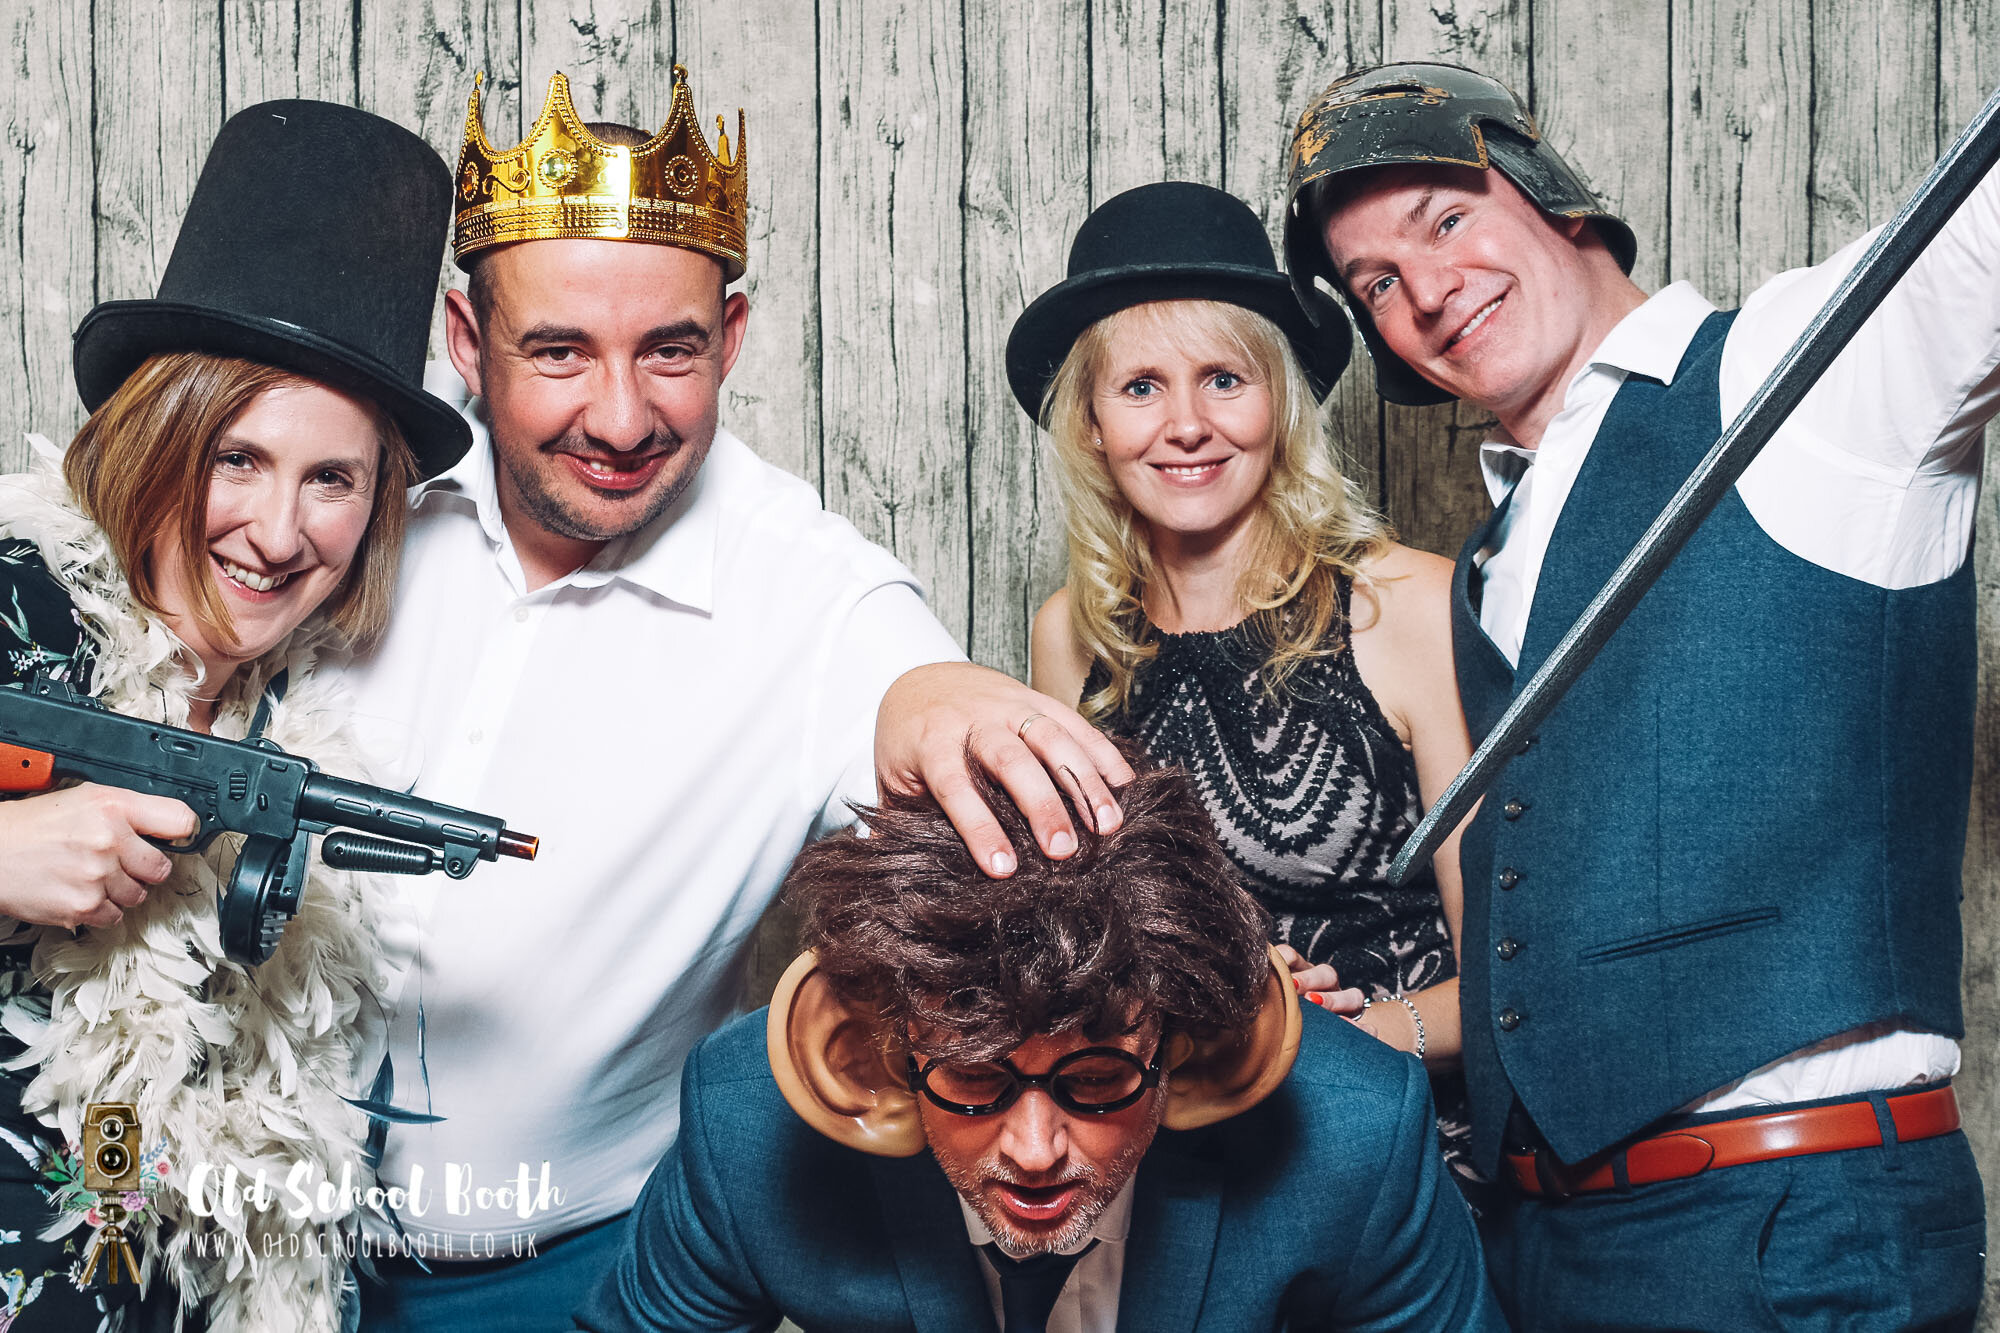 Goldsborough hall yorkshire photo booth hire